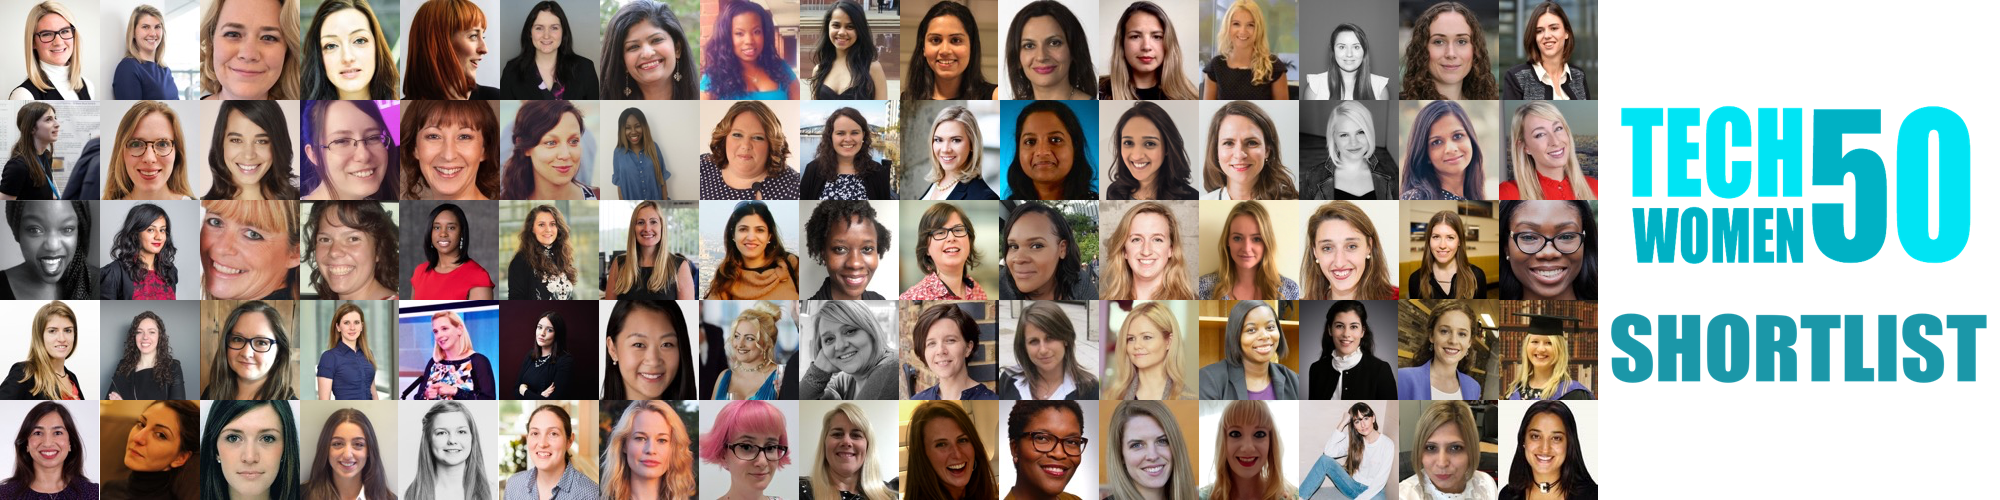 TechWomen50-Shortlist-banner